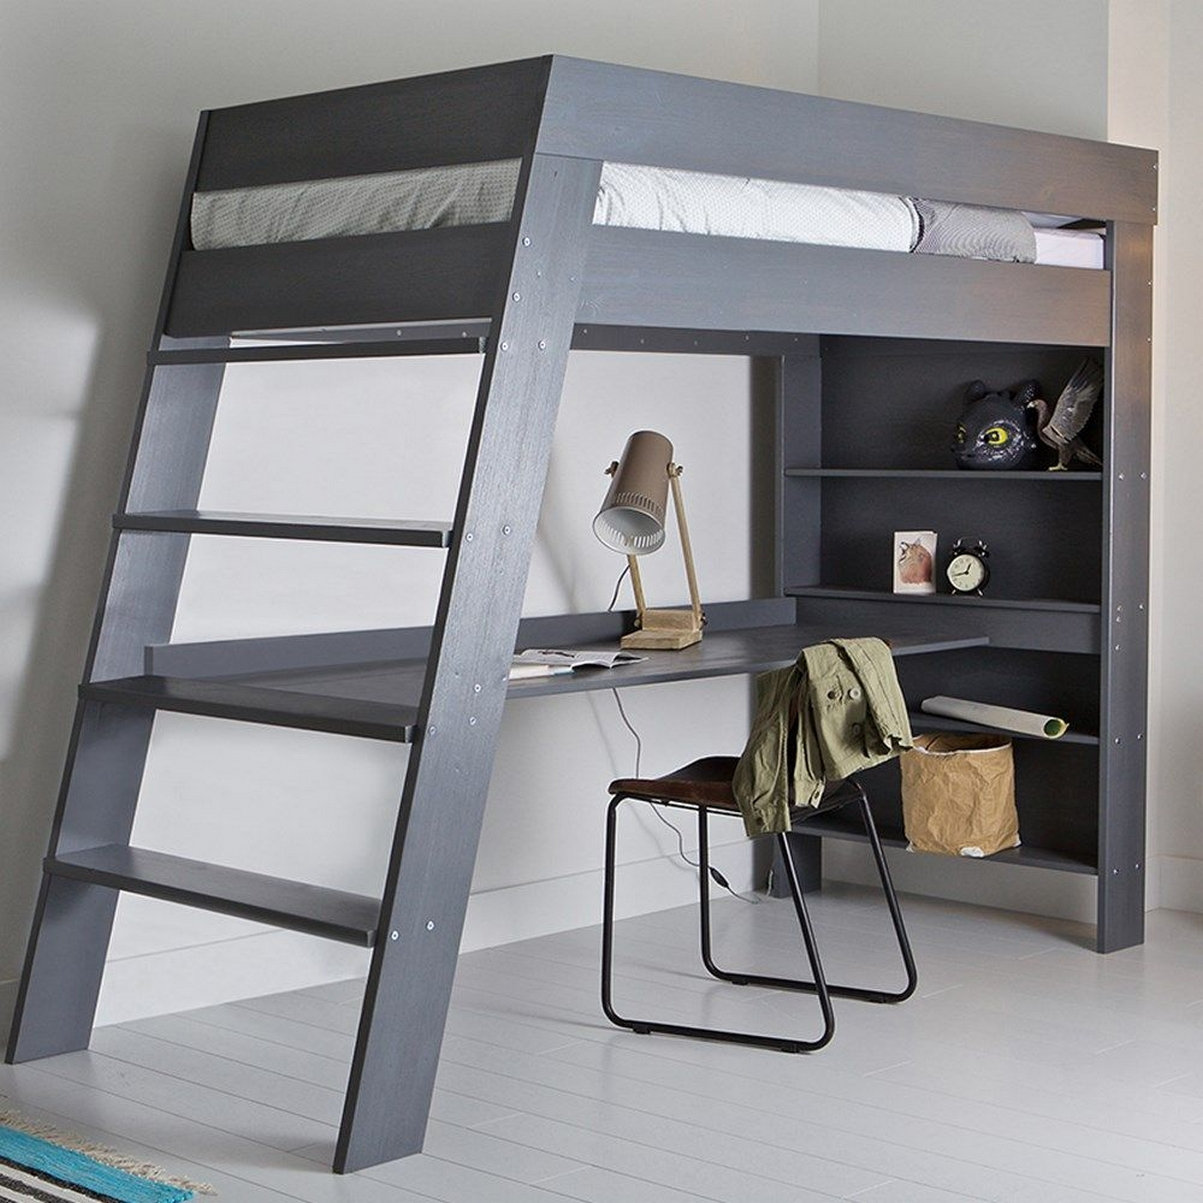 30+ Bunk Beds Design Ideas With Desk Areas Help To Make Compact Bedrooms Bigger 10